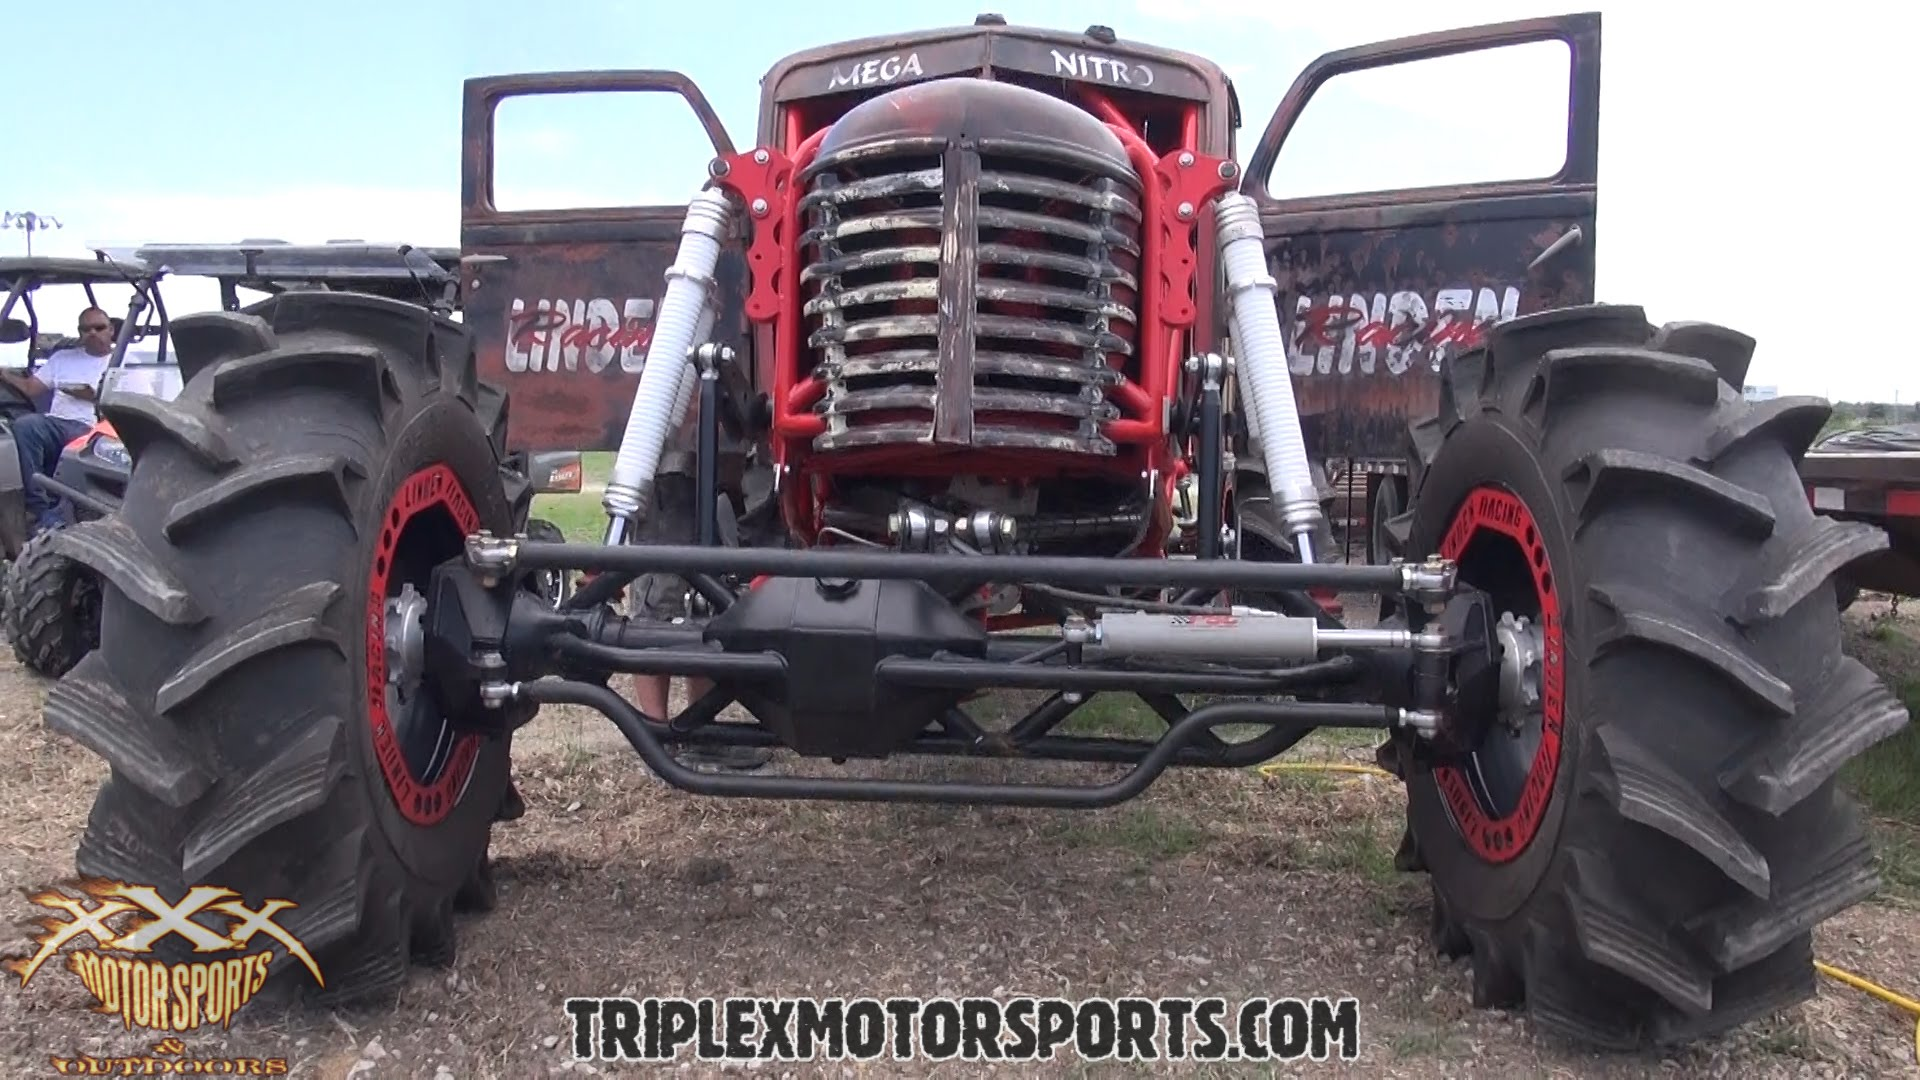 2100HP Mega Nitro Mud Truck Is The Ultimate Mud Drag Racing Truck On The Planet